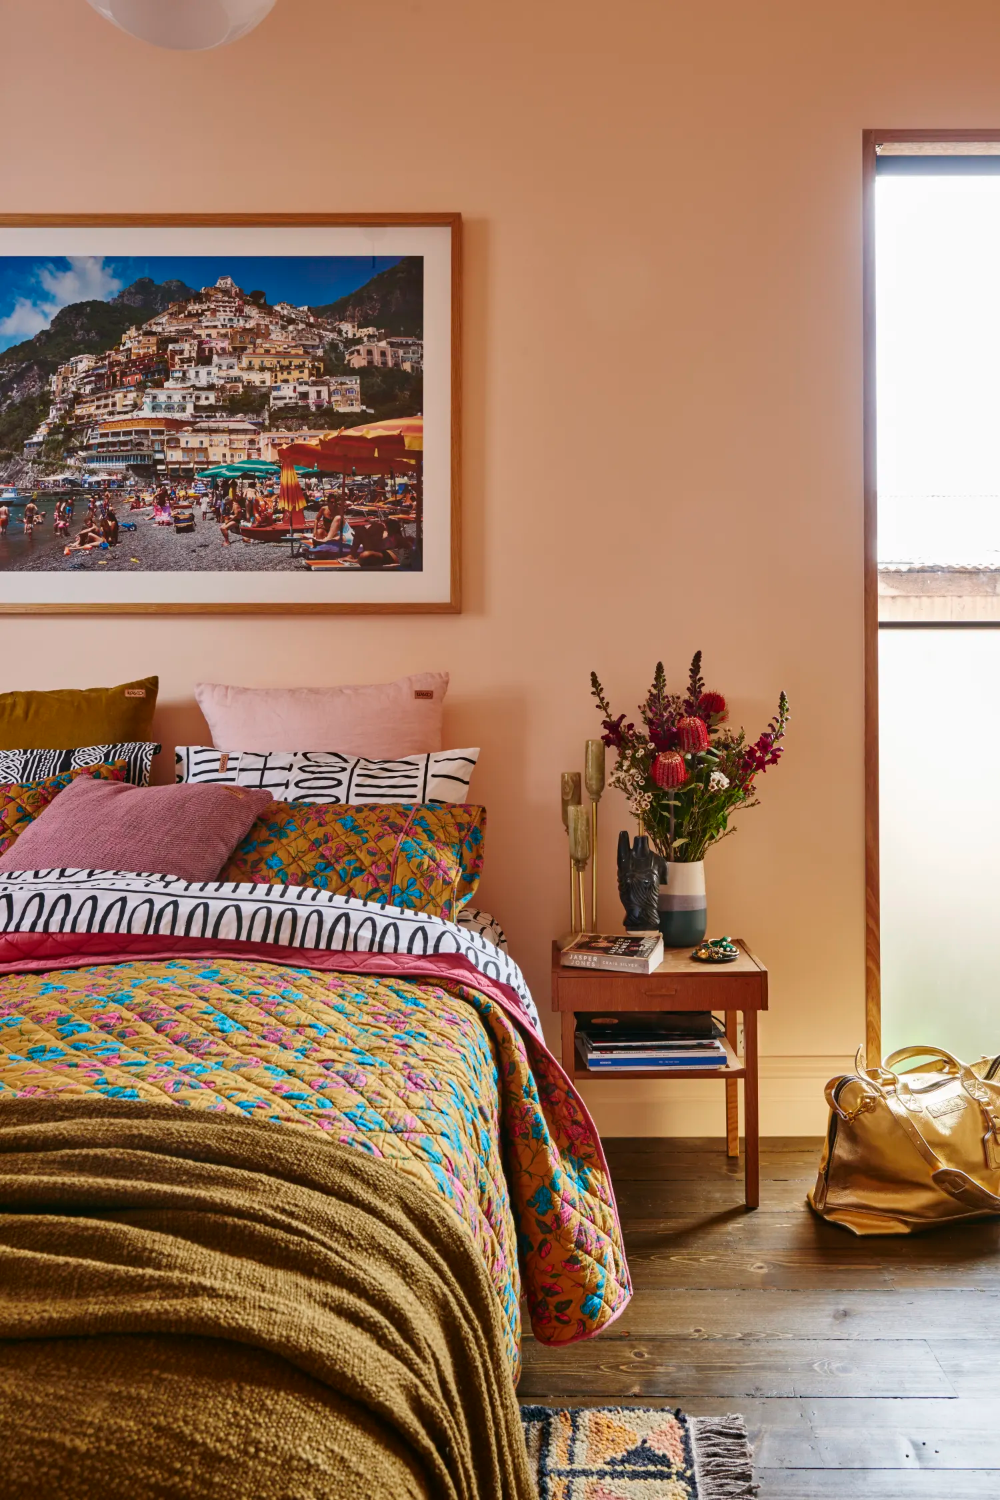 12 Completely UnCheesy Ways to Create a Romantic Bedroom